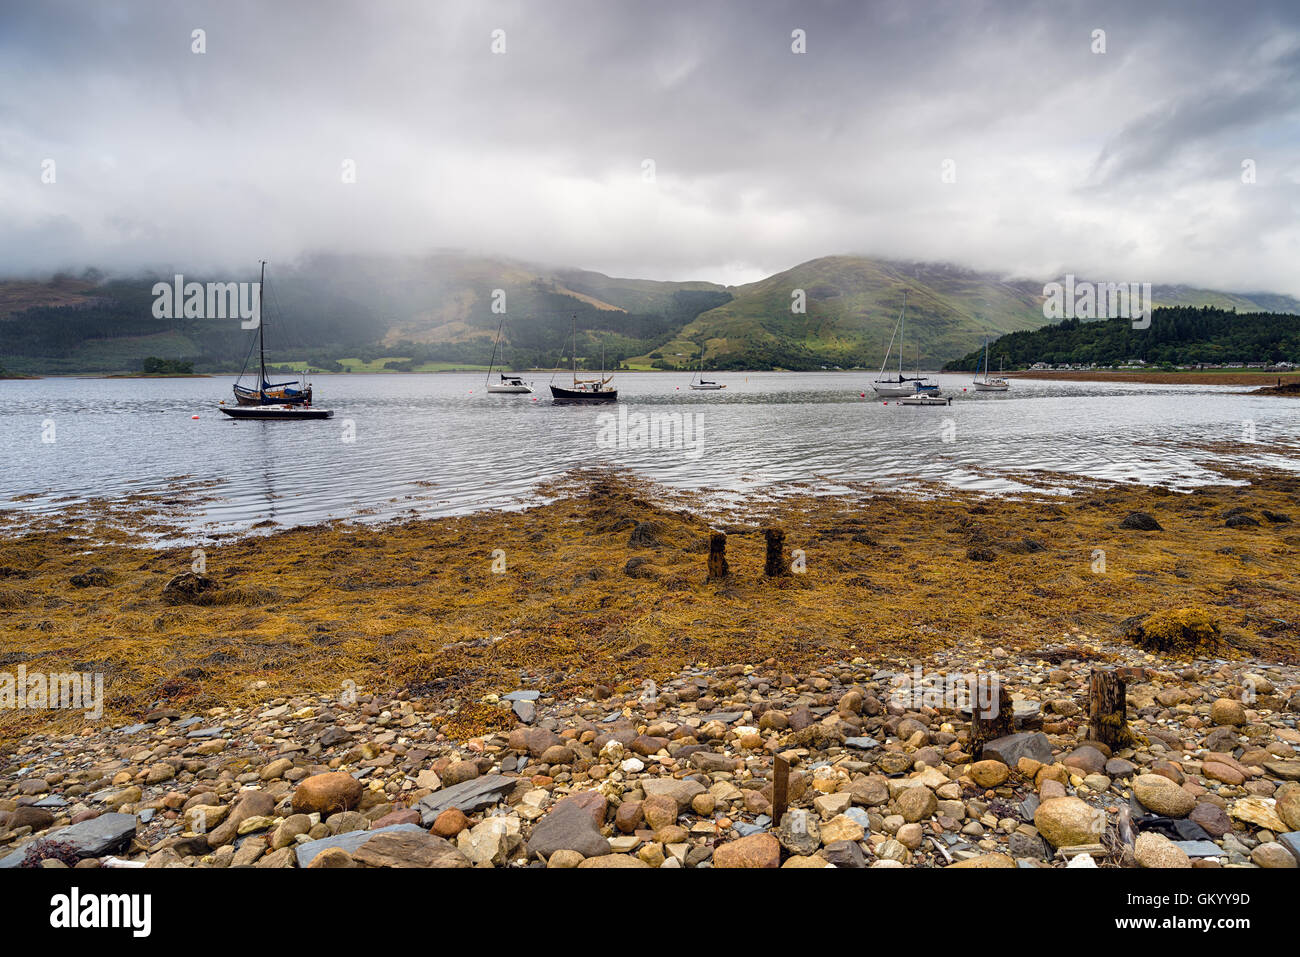 Boats at Loch Leven near Glencoe in the Scottish Highlands - Stock Image